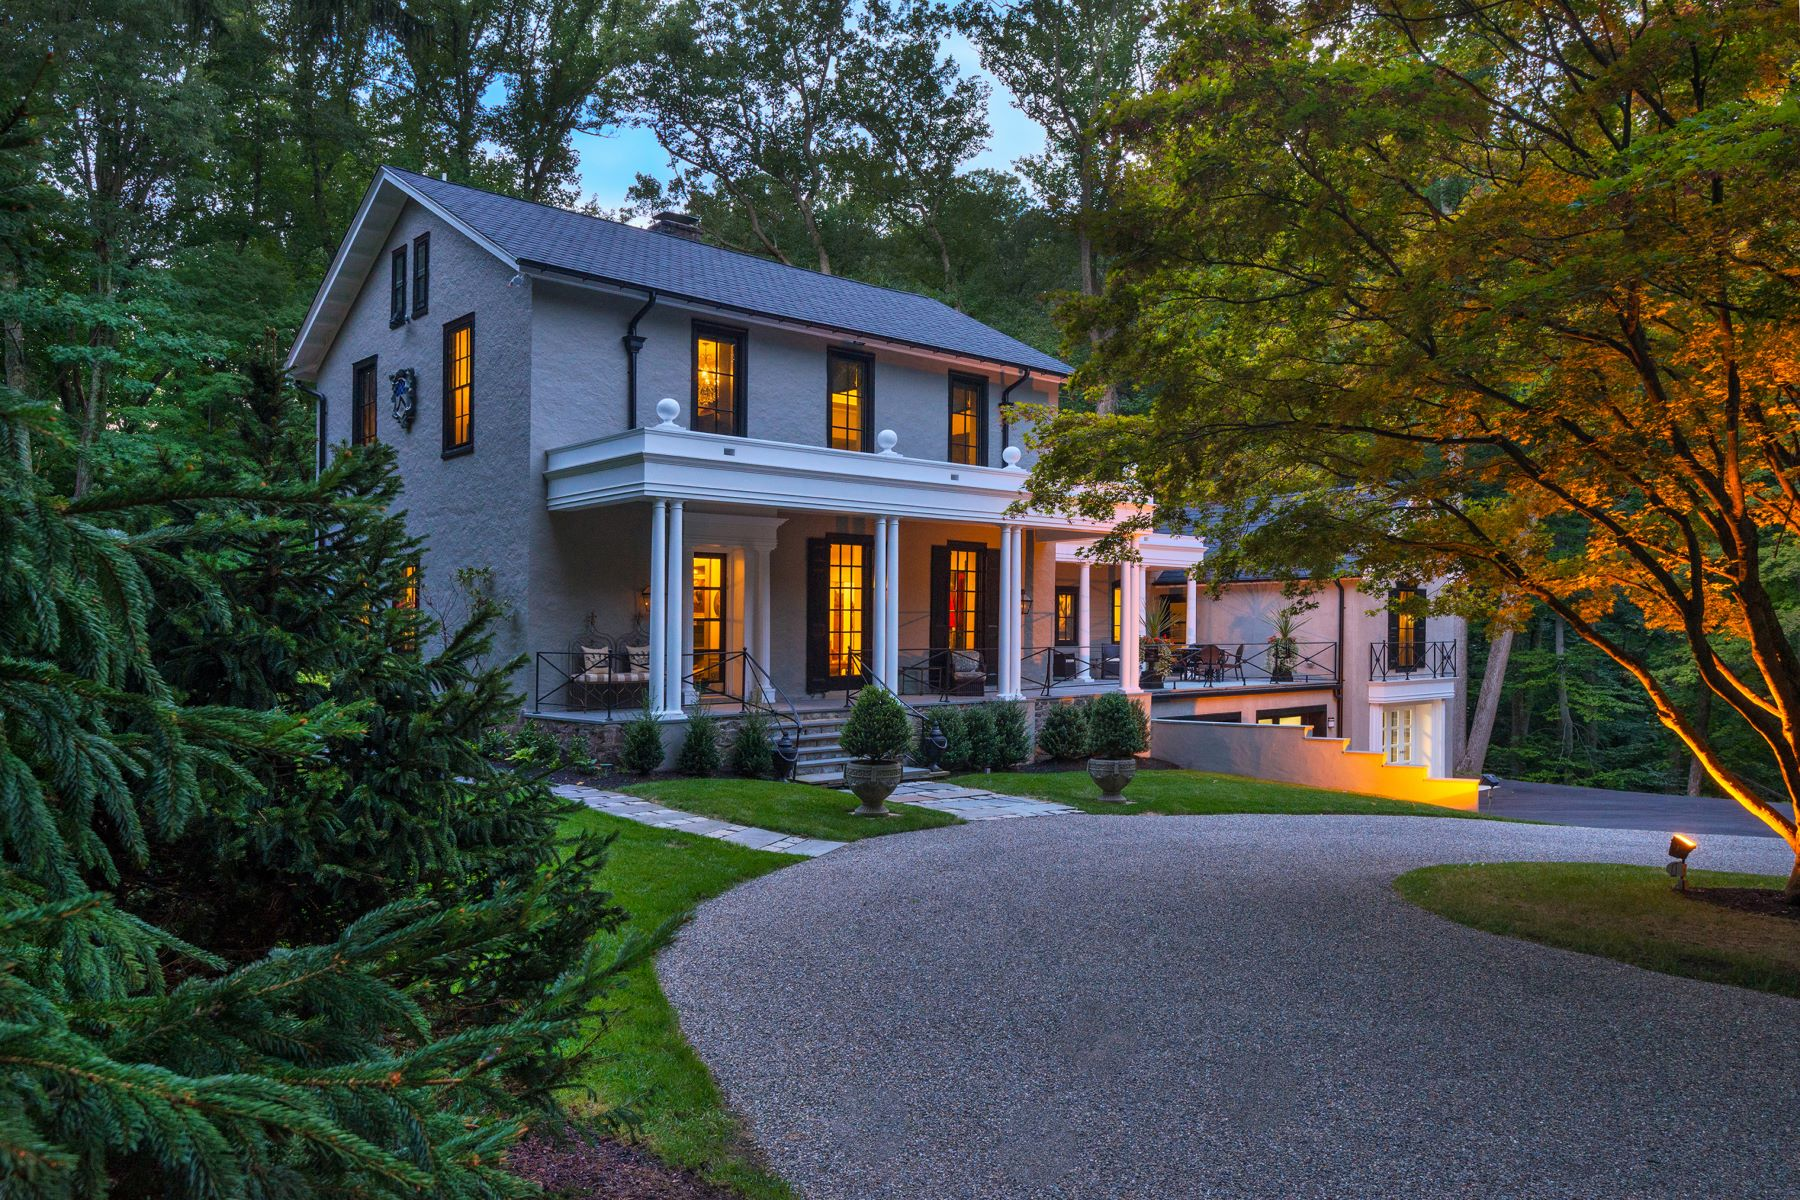 Single Family Homes for Sale at L'Ecole 6615 GREENHILL RD New Hope, Pennsylvania 18938 United States